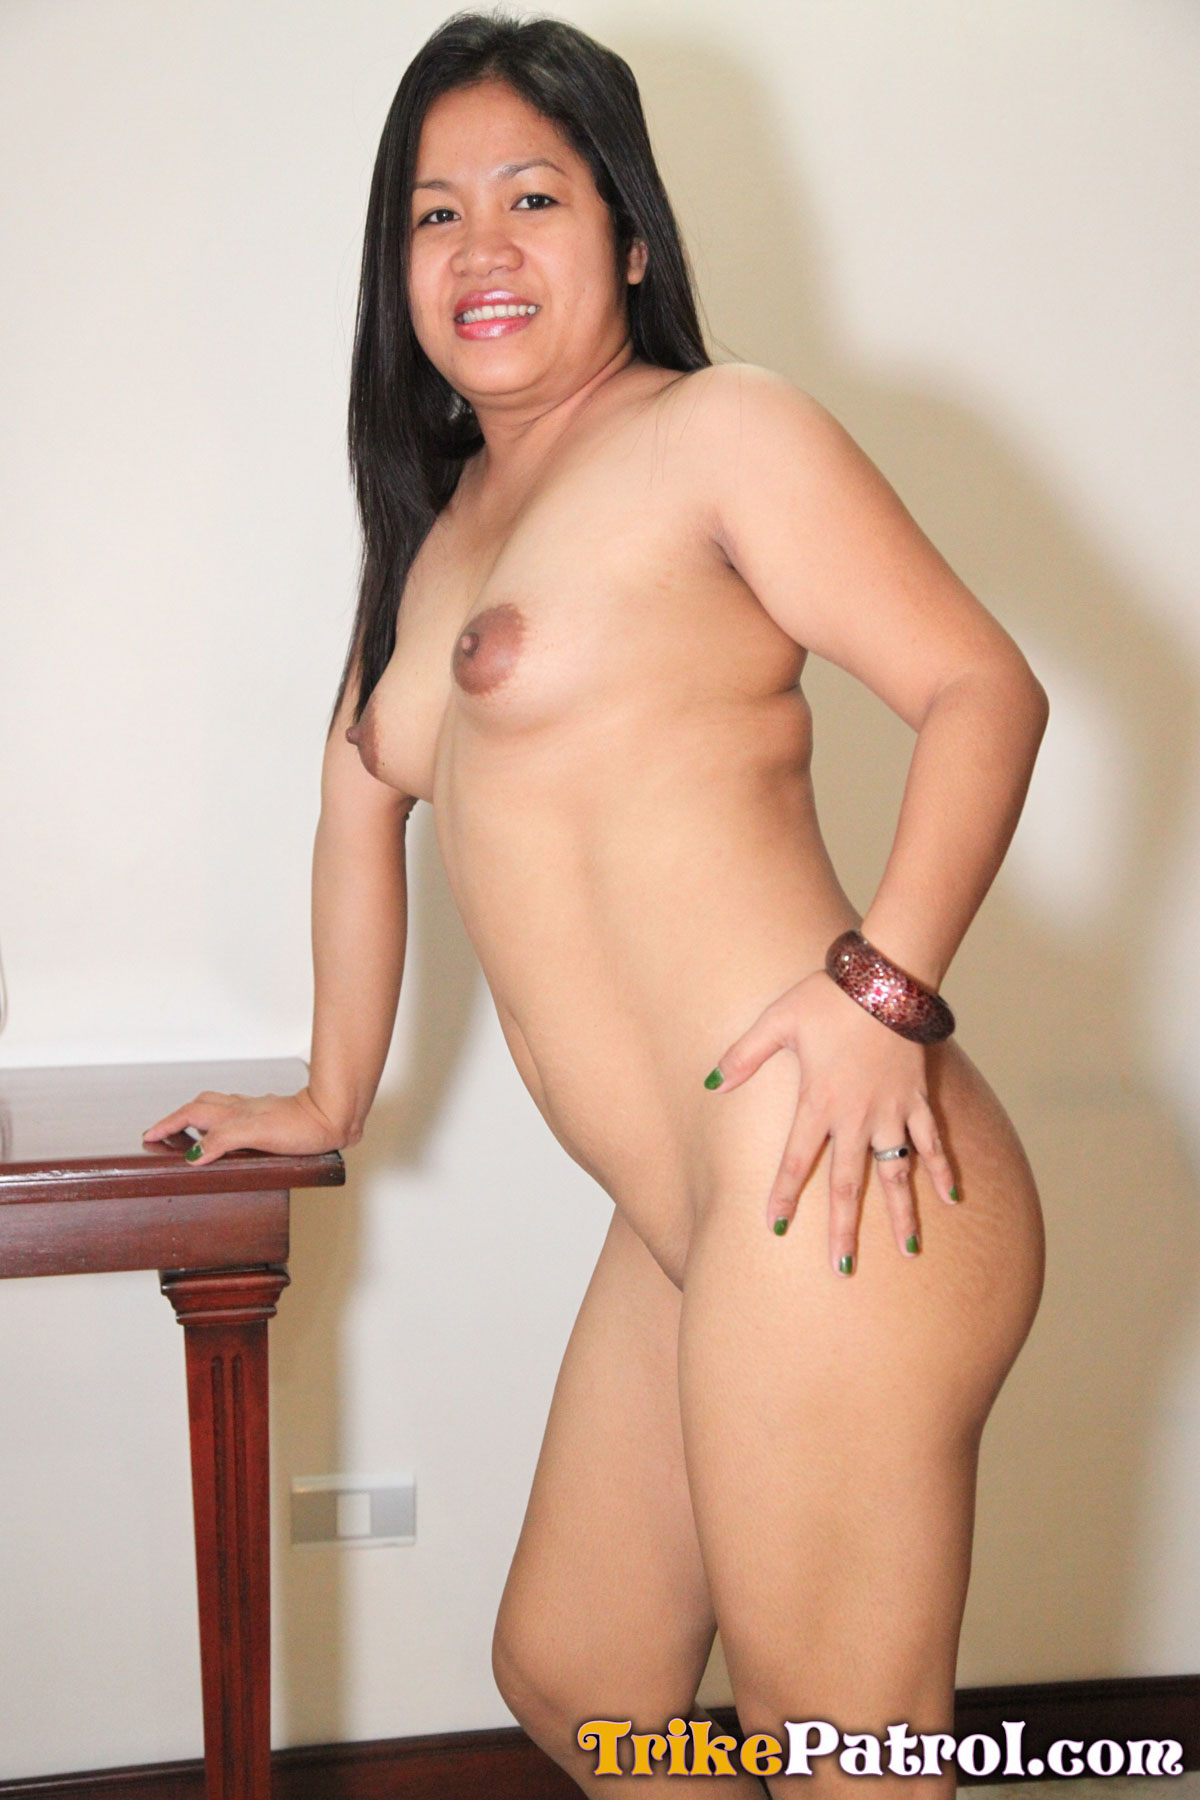 Mature nude filipina women